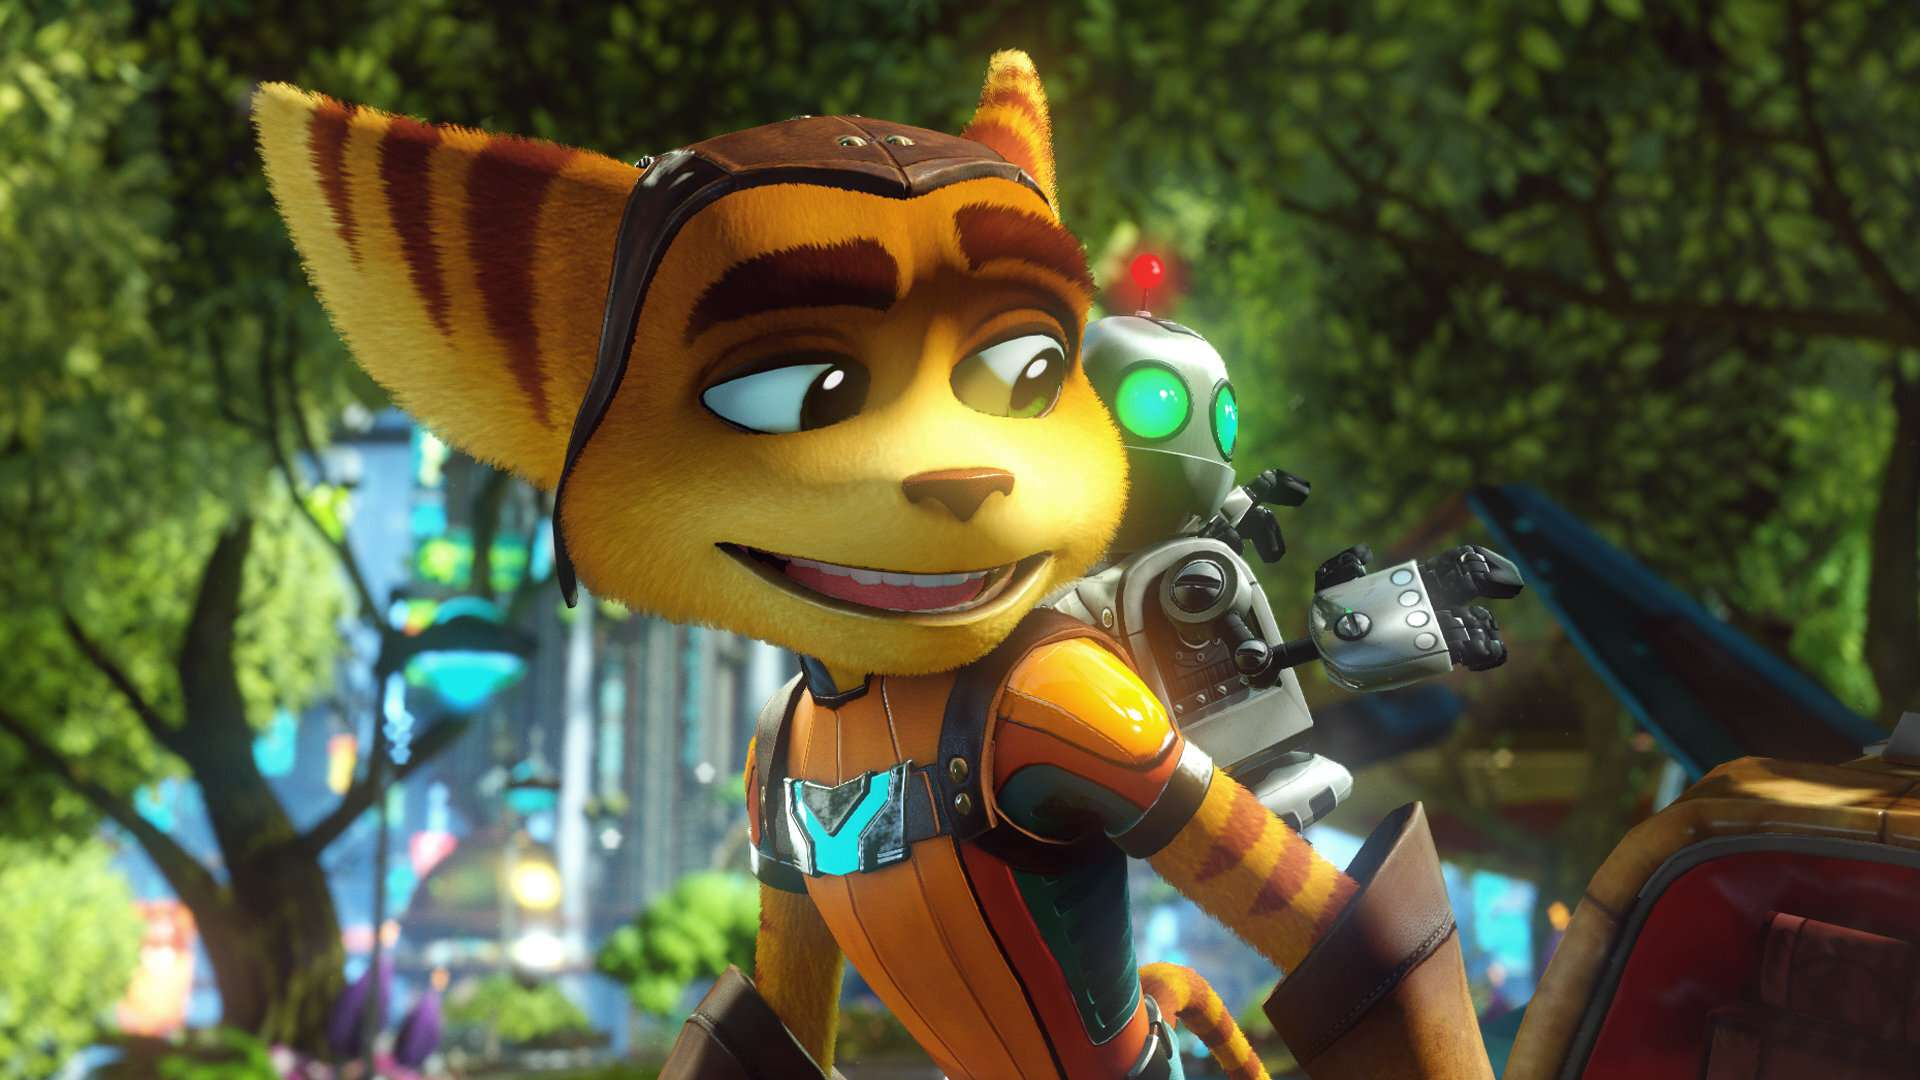 Ratchet Clank PS5 - Ratchet & Clank se actualiza gratis a PlayStation 5